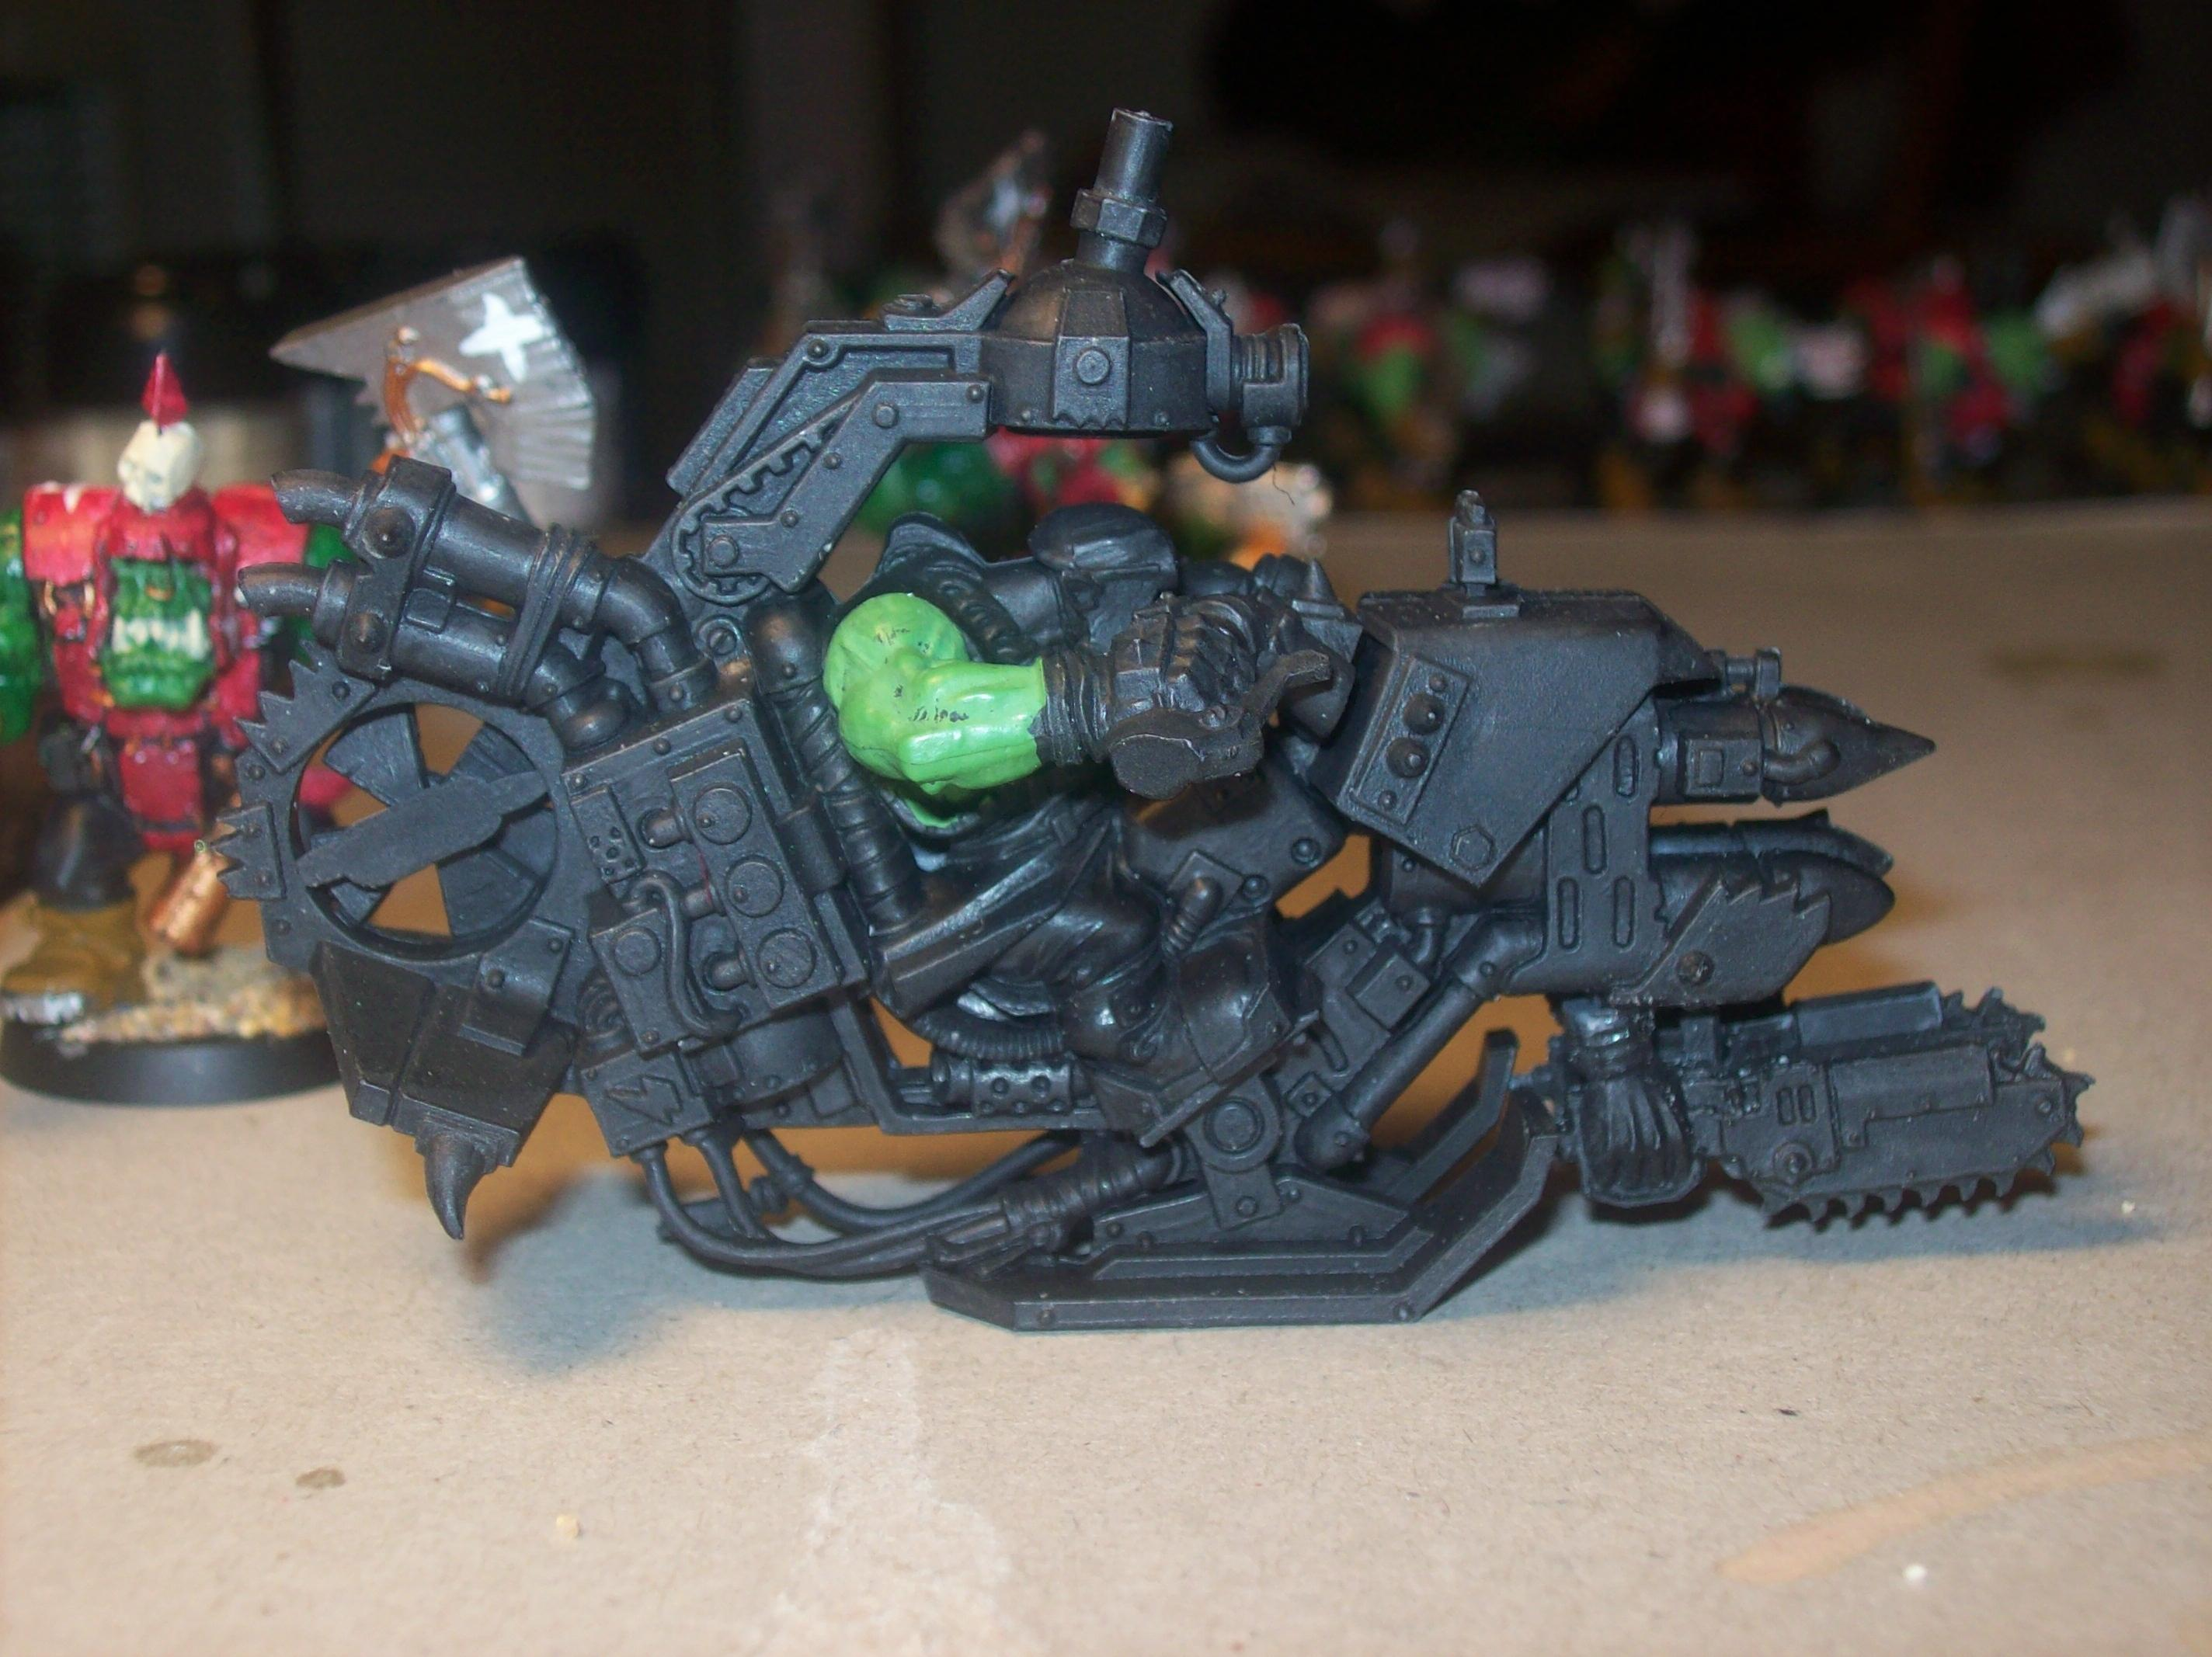 Ork Wip, Deffcopta with chain swords